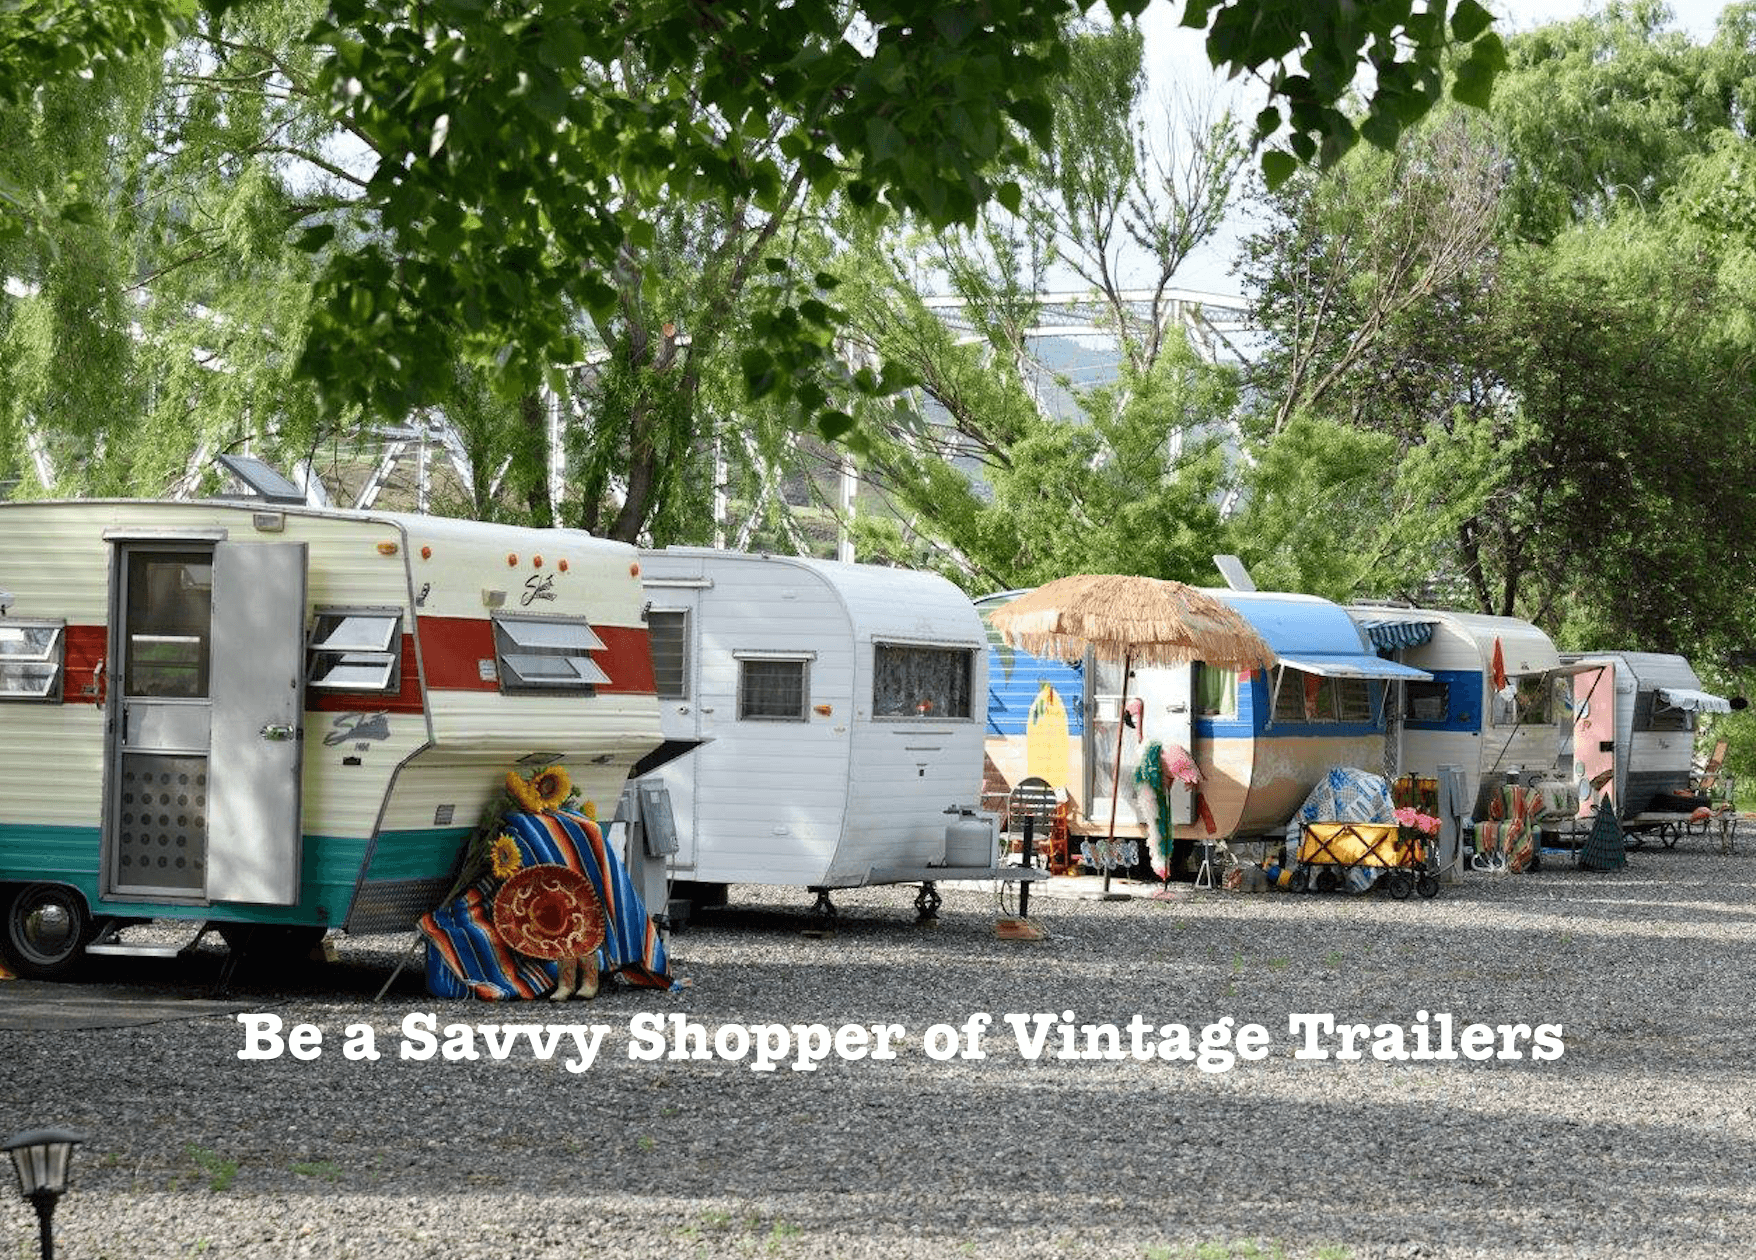 Be a Savvy Shopper of Vintage Trailers